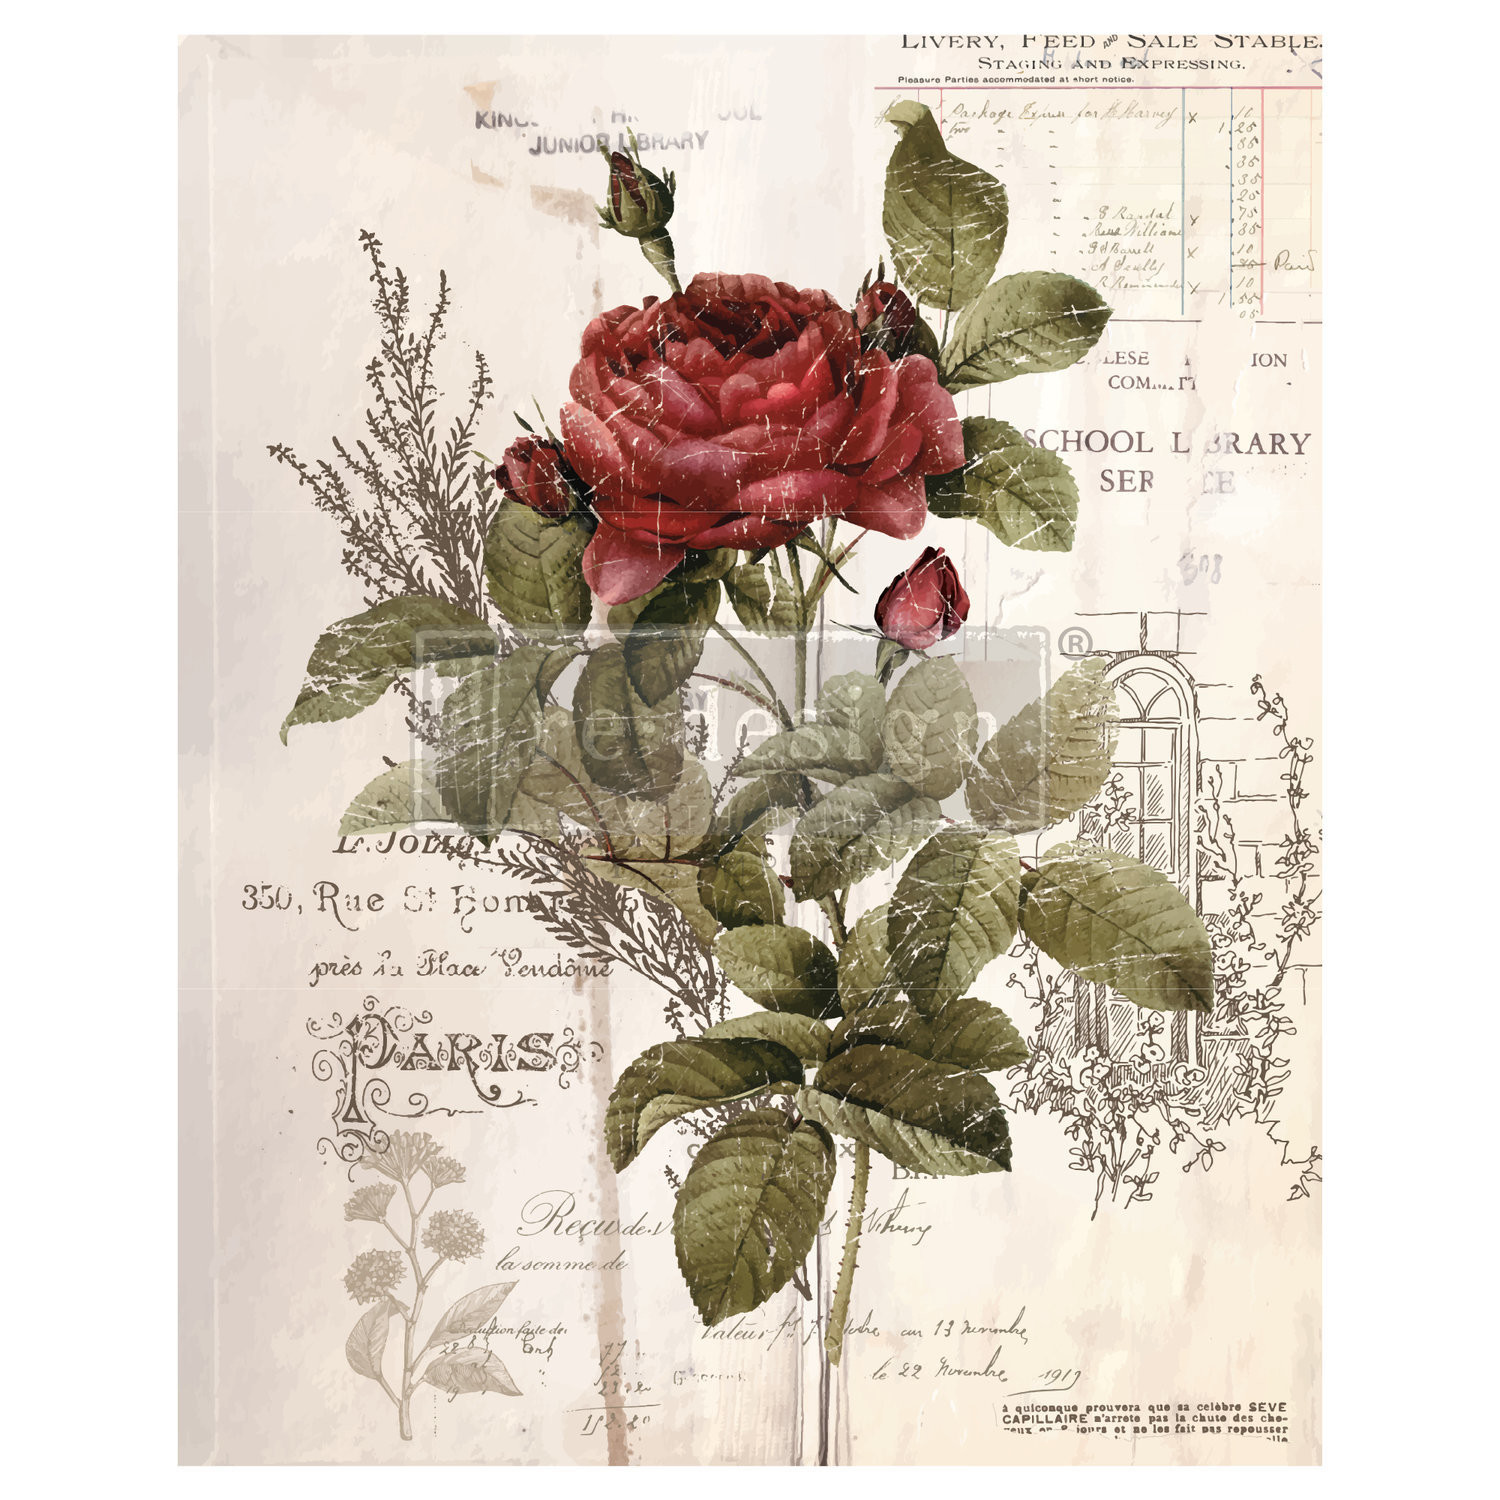 Prima Decor Transfer Botanical Rose Buy Unicorn Spit